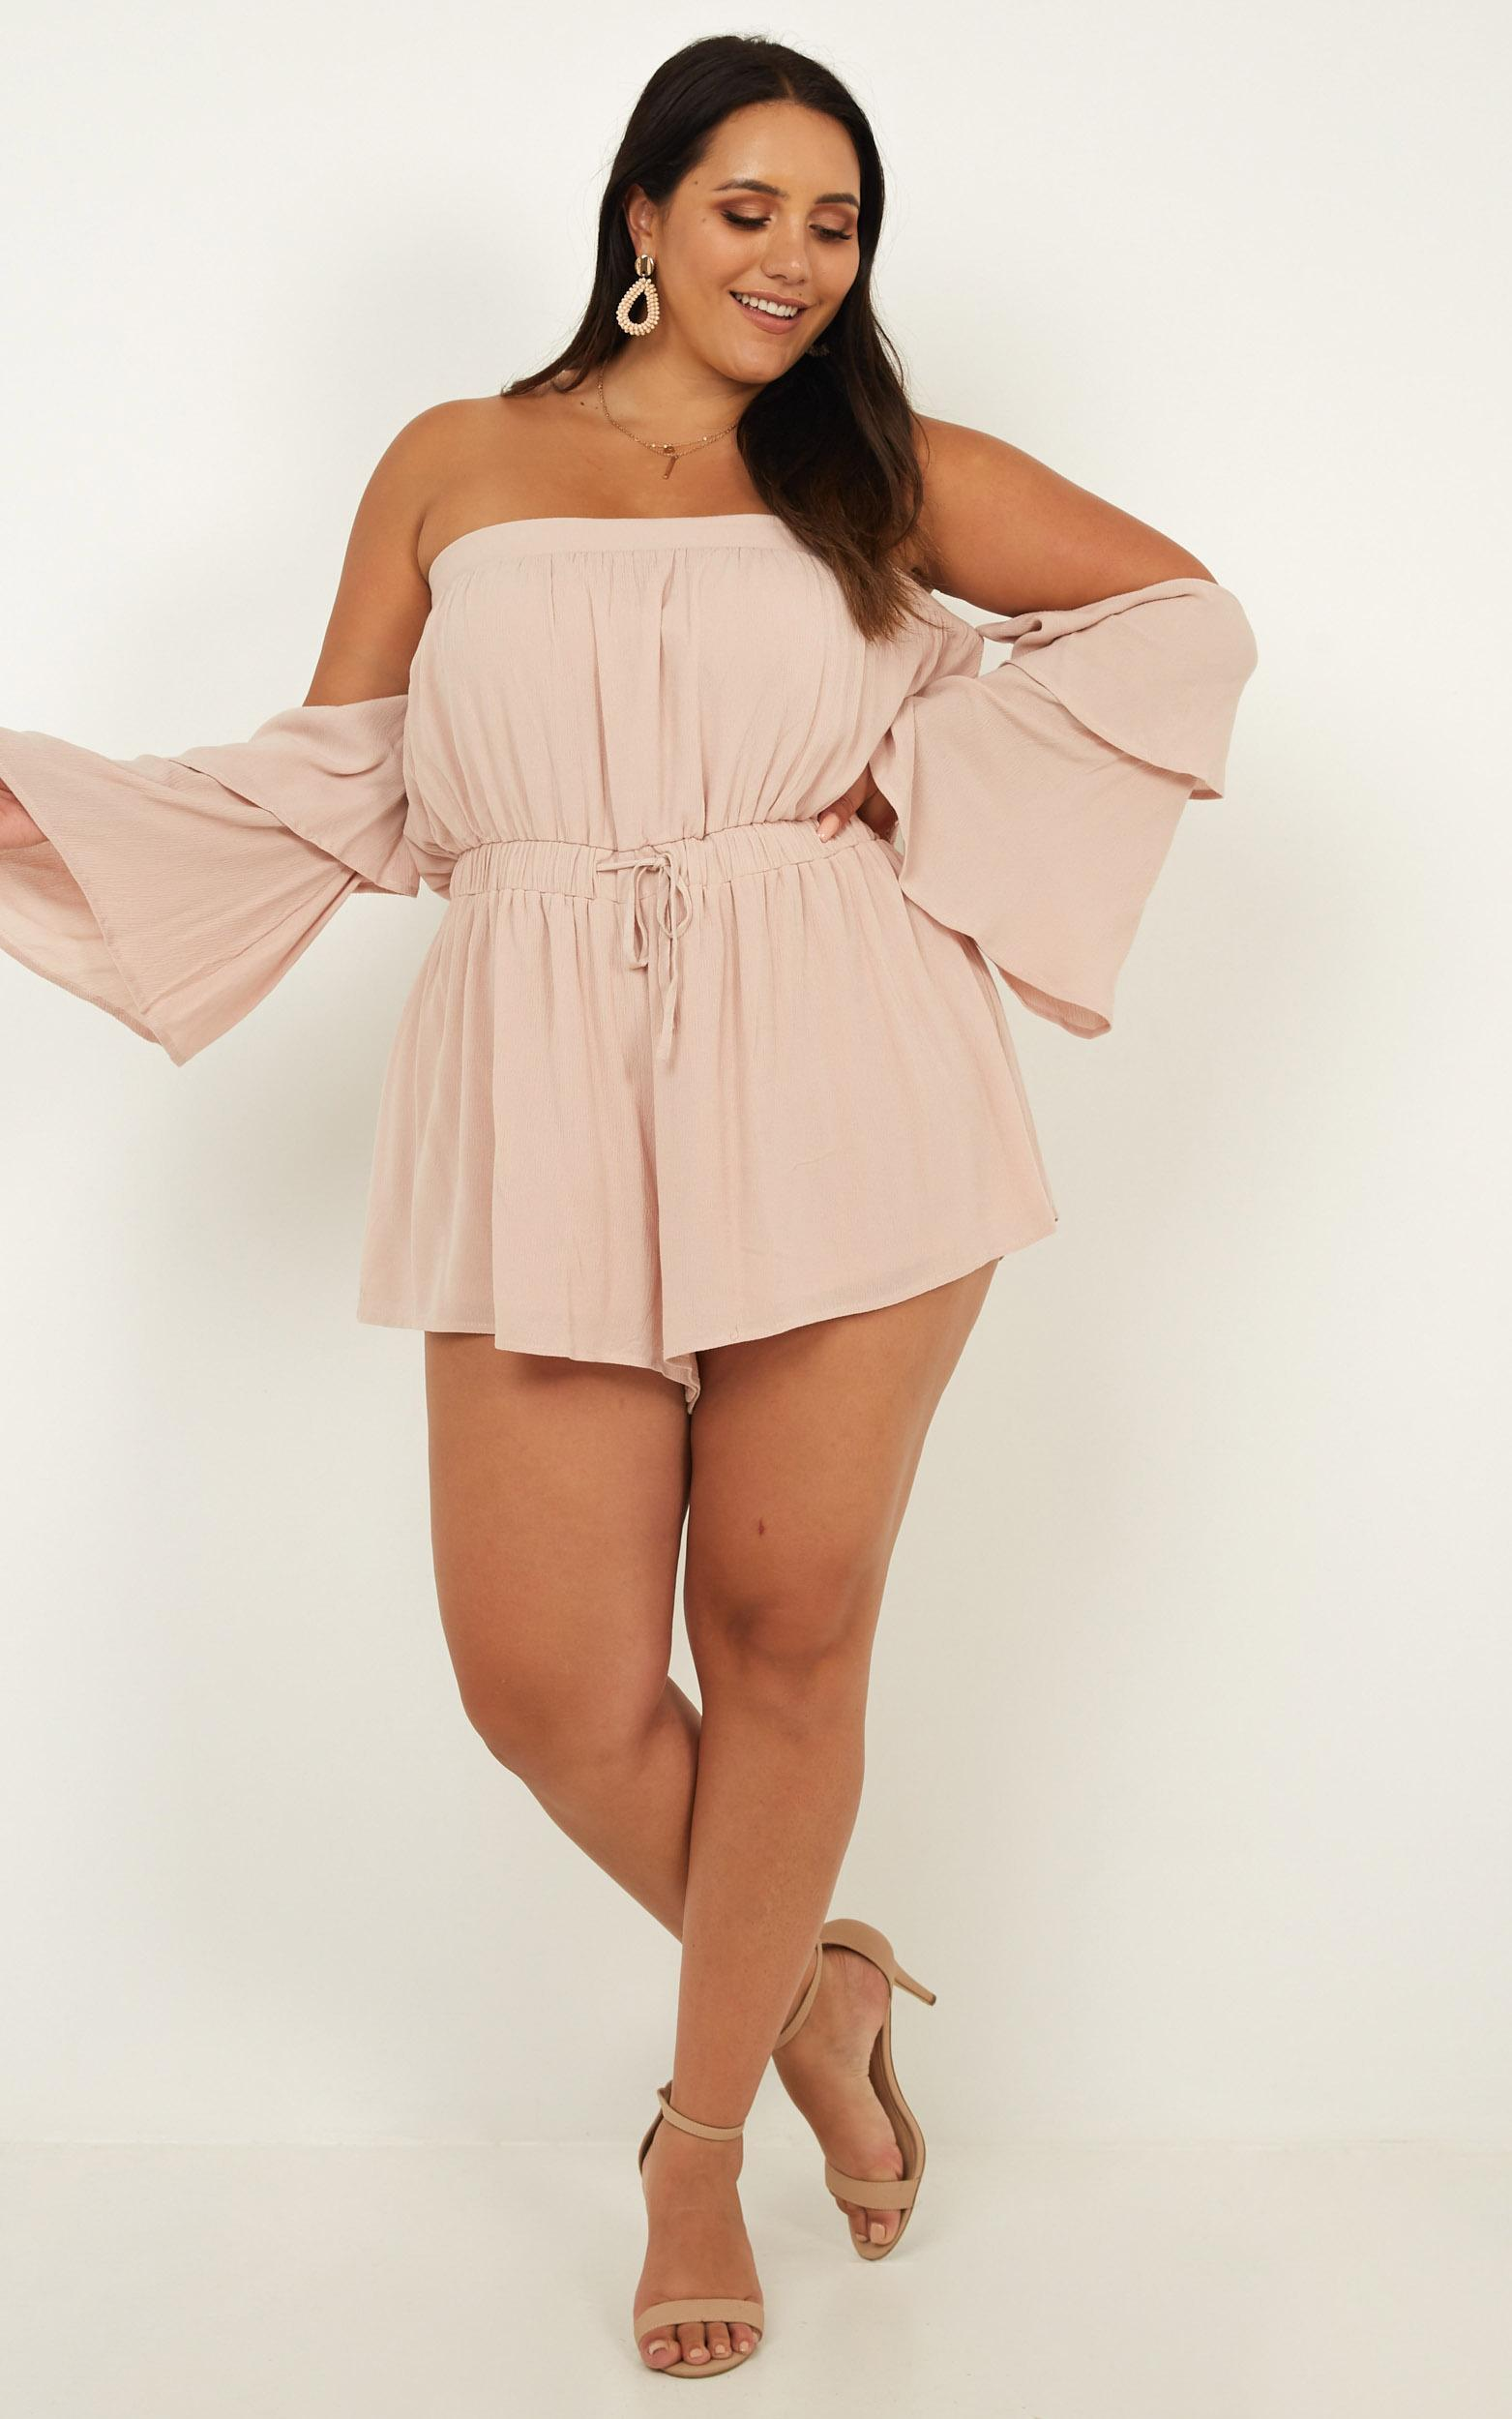 Keeping Me Playsuit in blush - 20 (XXXXL), Blush, hi-res image number null